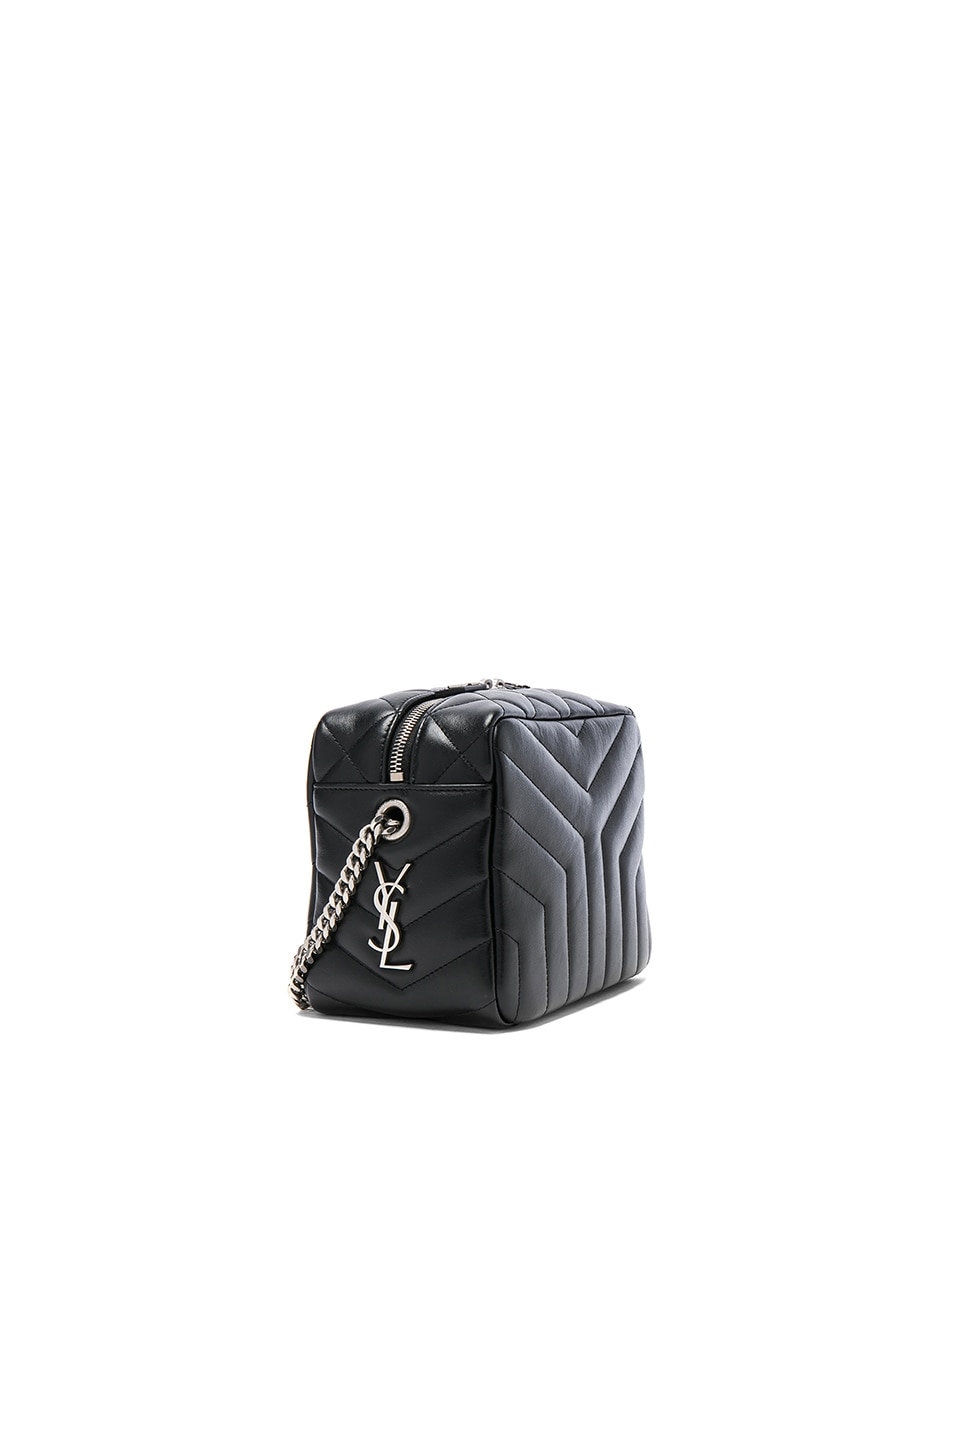 Image 3 of Saint Laurent Small Loulou Top Handle Bowling Bag in Black